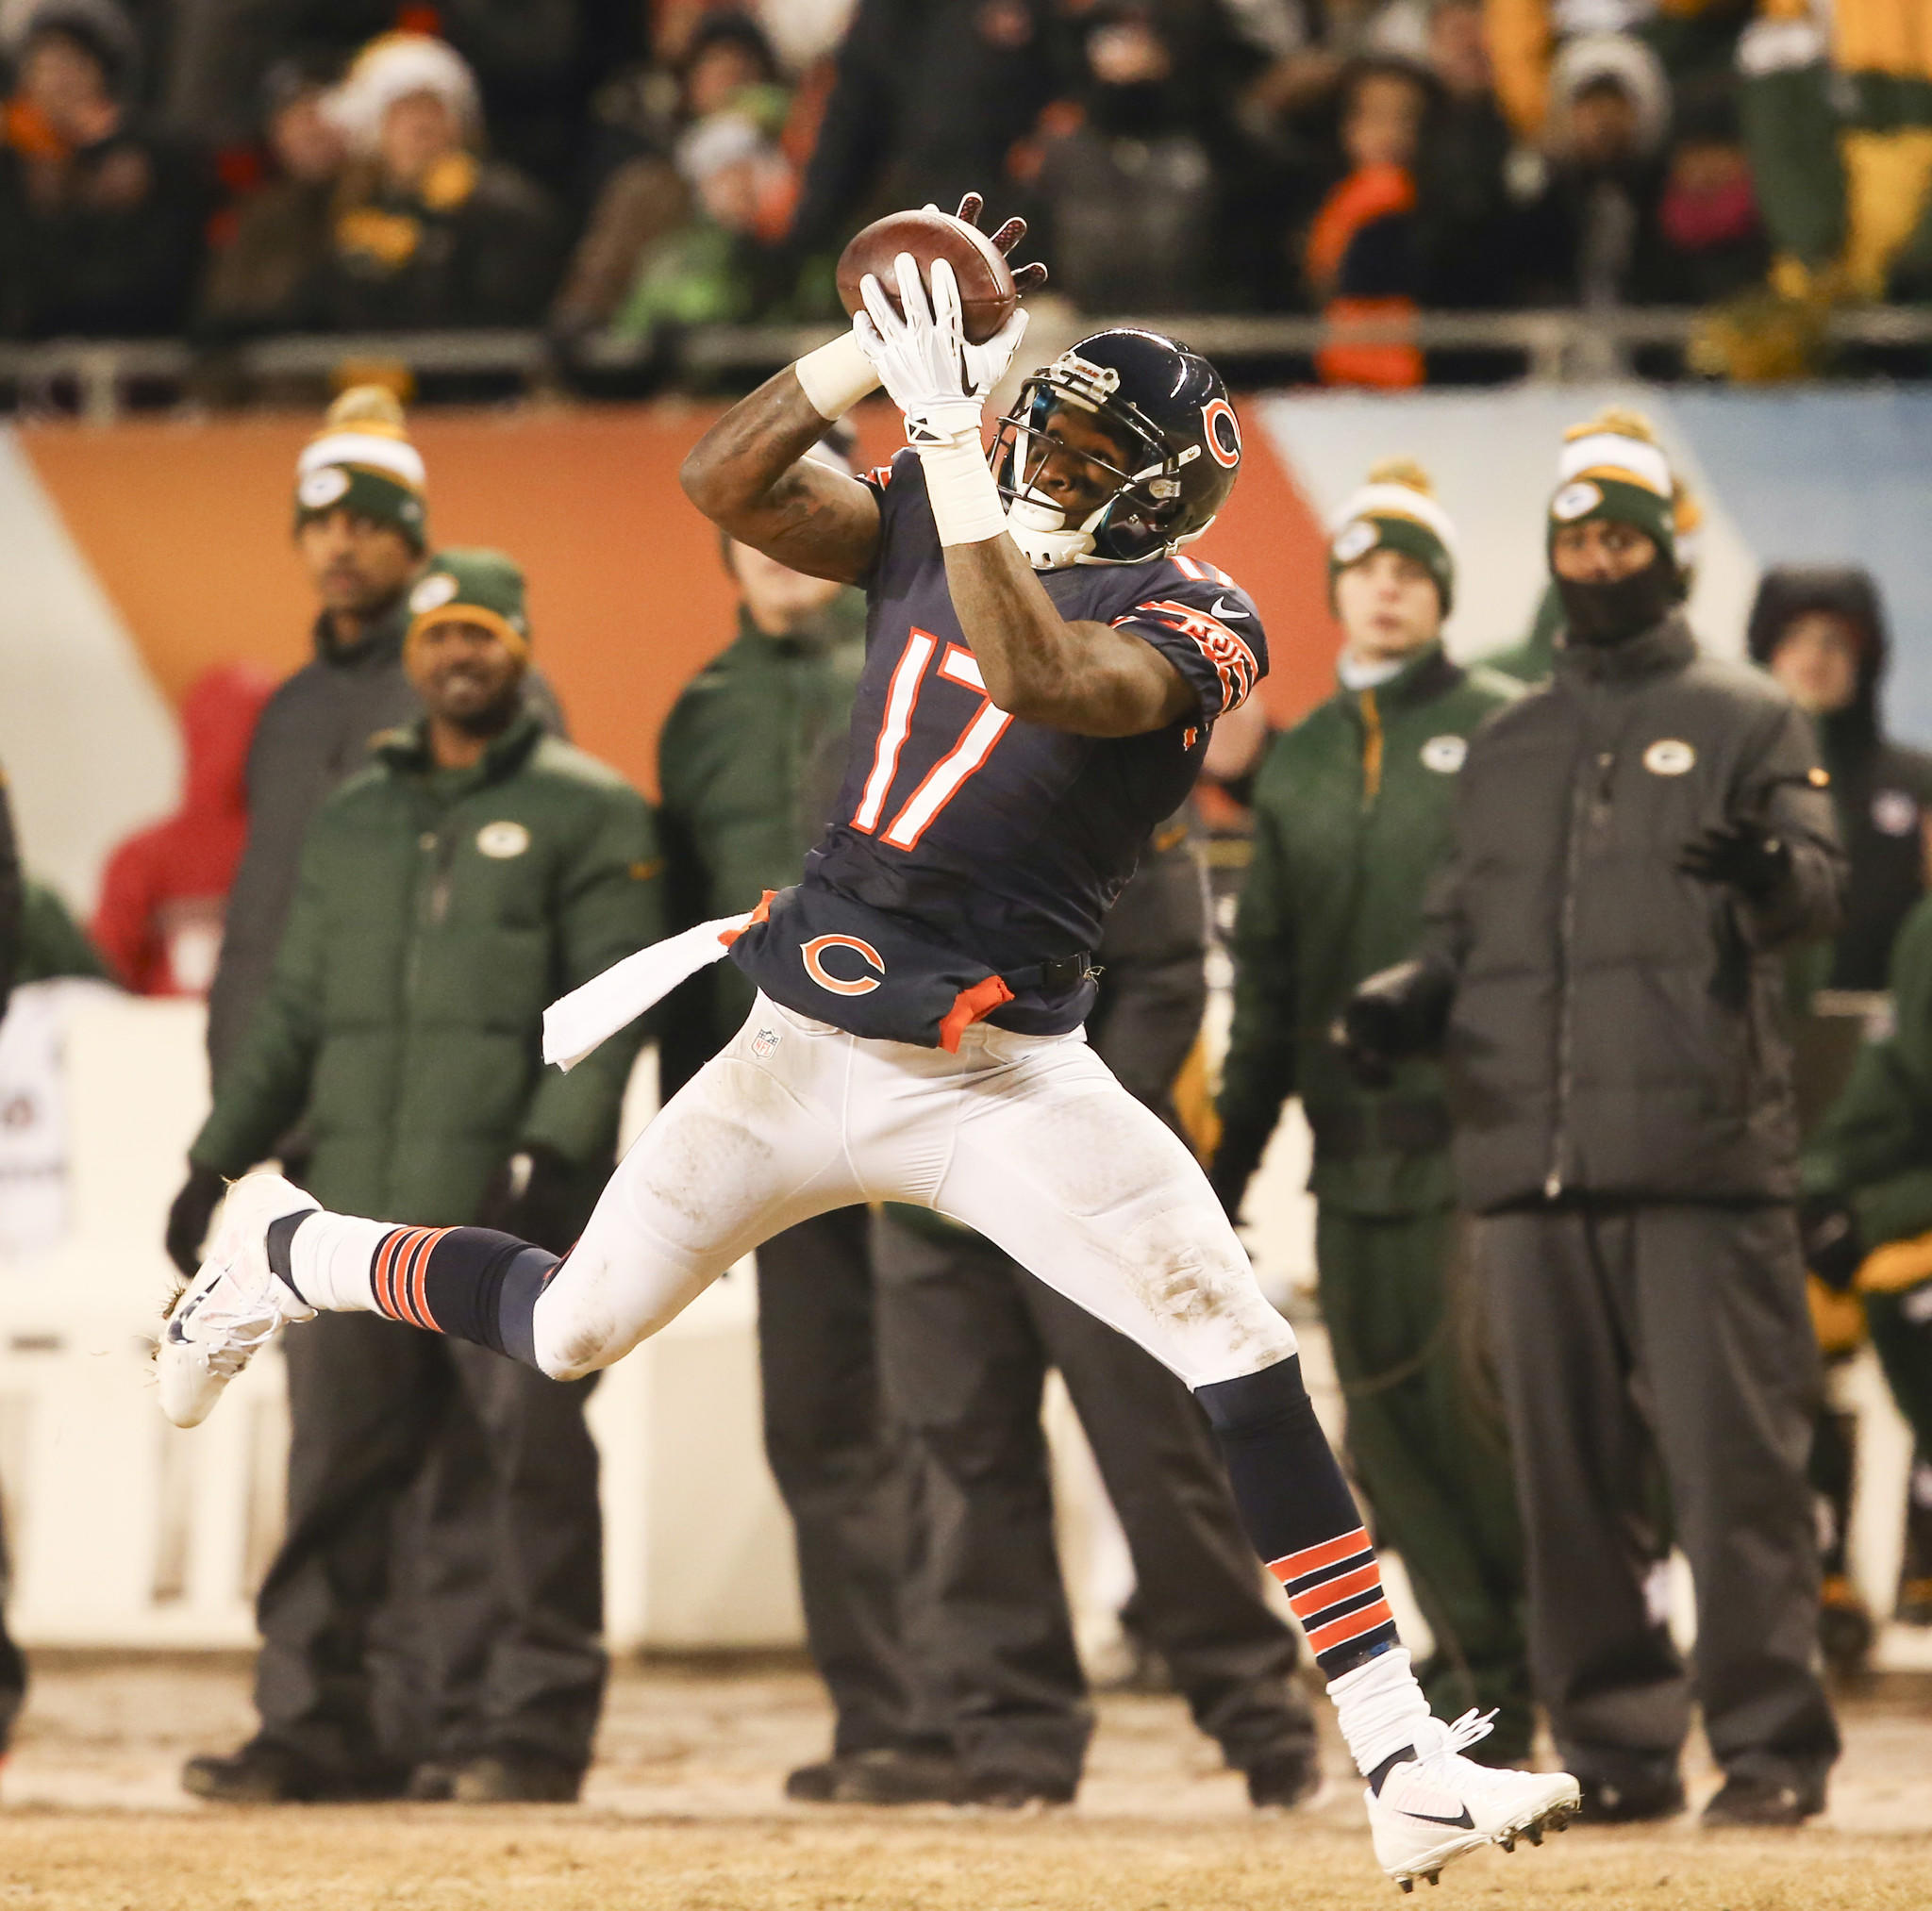 The emergence of wide receiver Alshon Jeffery is one reason Bears fans should be optimistic about next season.